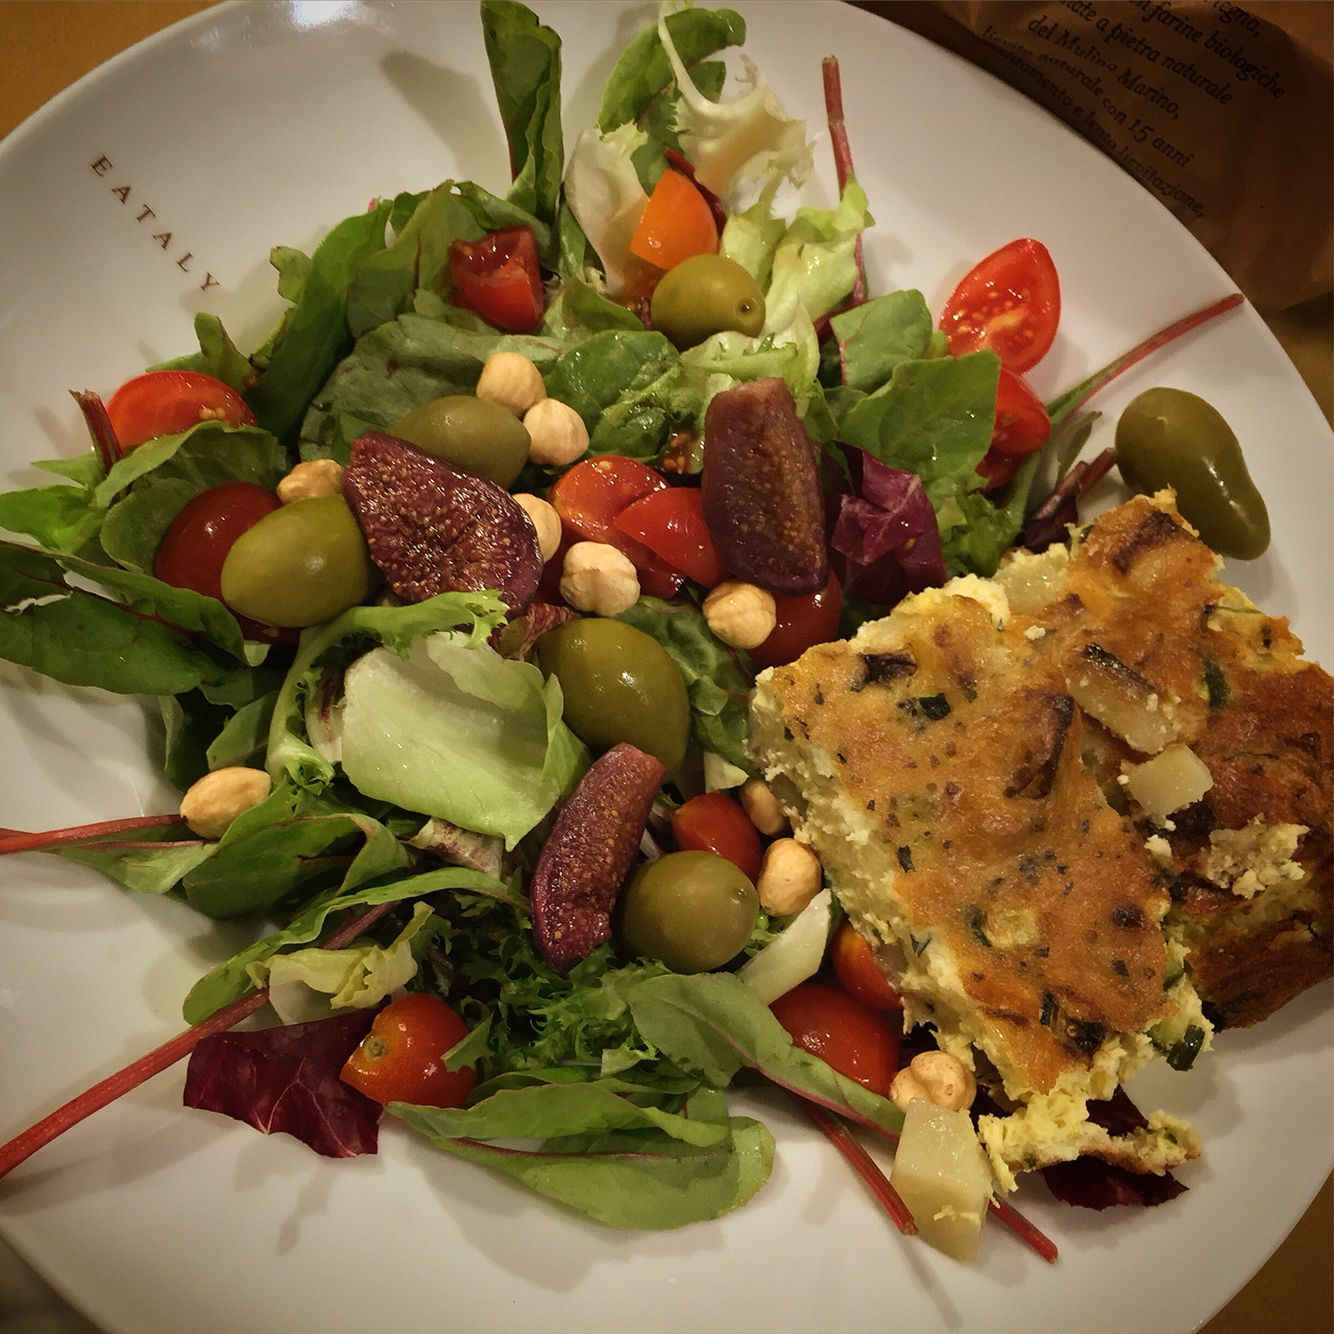 Photo Taken a Little 'Time Ago Good Lunch    #photo #dish #salad #omelette #green_olives #mixedsalad #walnuts #good #eat #food #Caterina #location #eatalysmeraldo #social #socialnetwork #pinterest #instagram #foursquare #swarm #tumblr #twitter #instagram #followme #followers